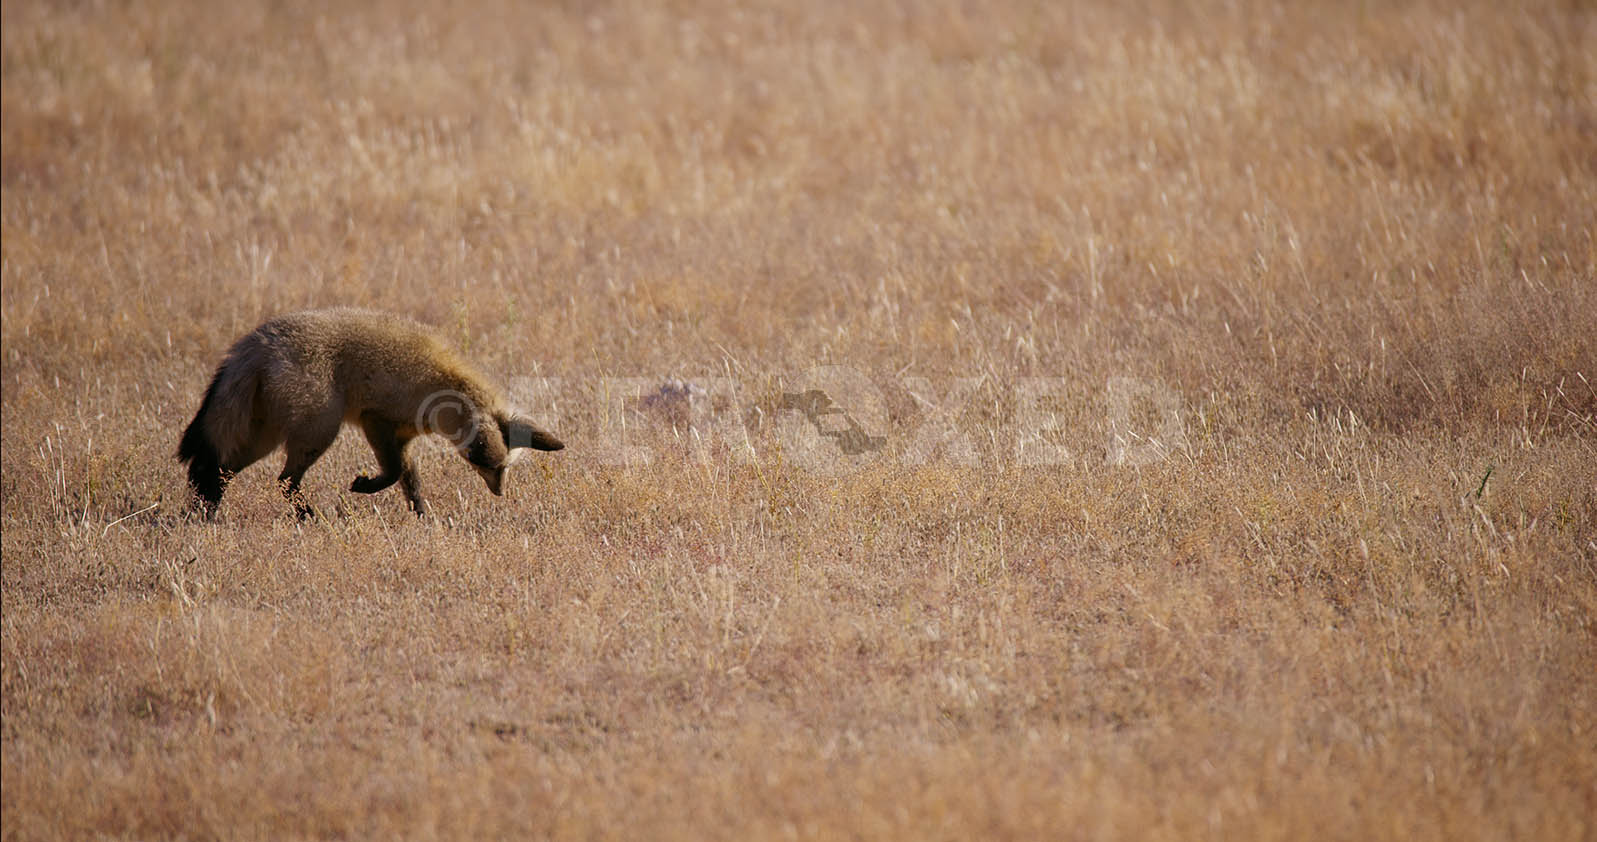 Bat Eared Fox Kgahagadi 2018 b_1.302.1.jpg